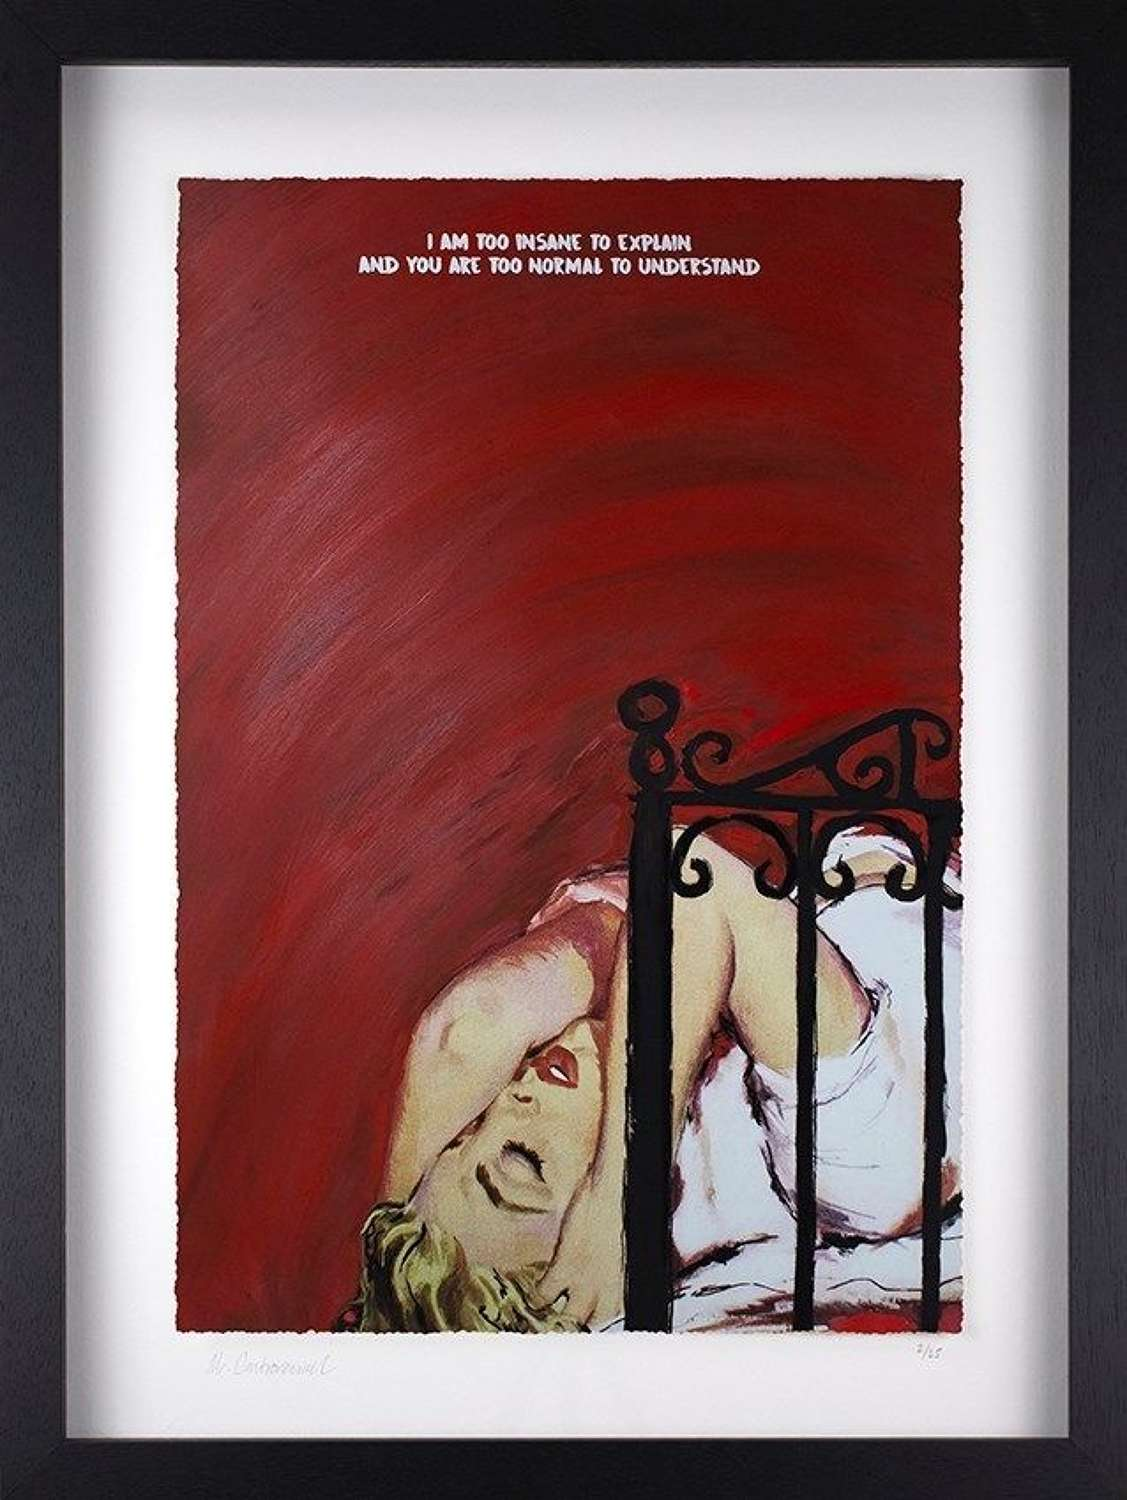 I'm Too Insane to Explain - Framed Art Print by Mr Controversial